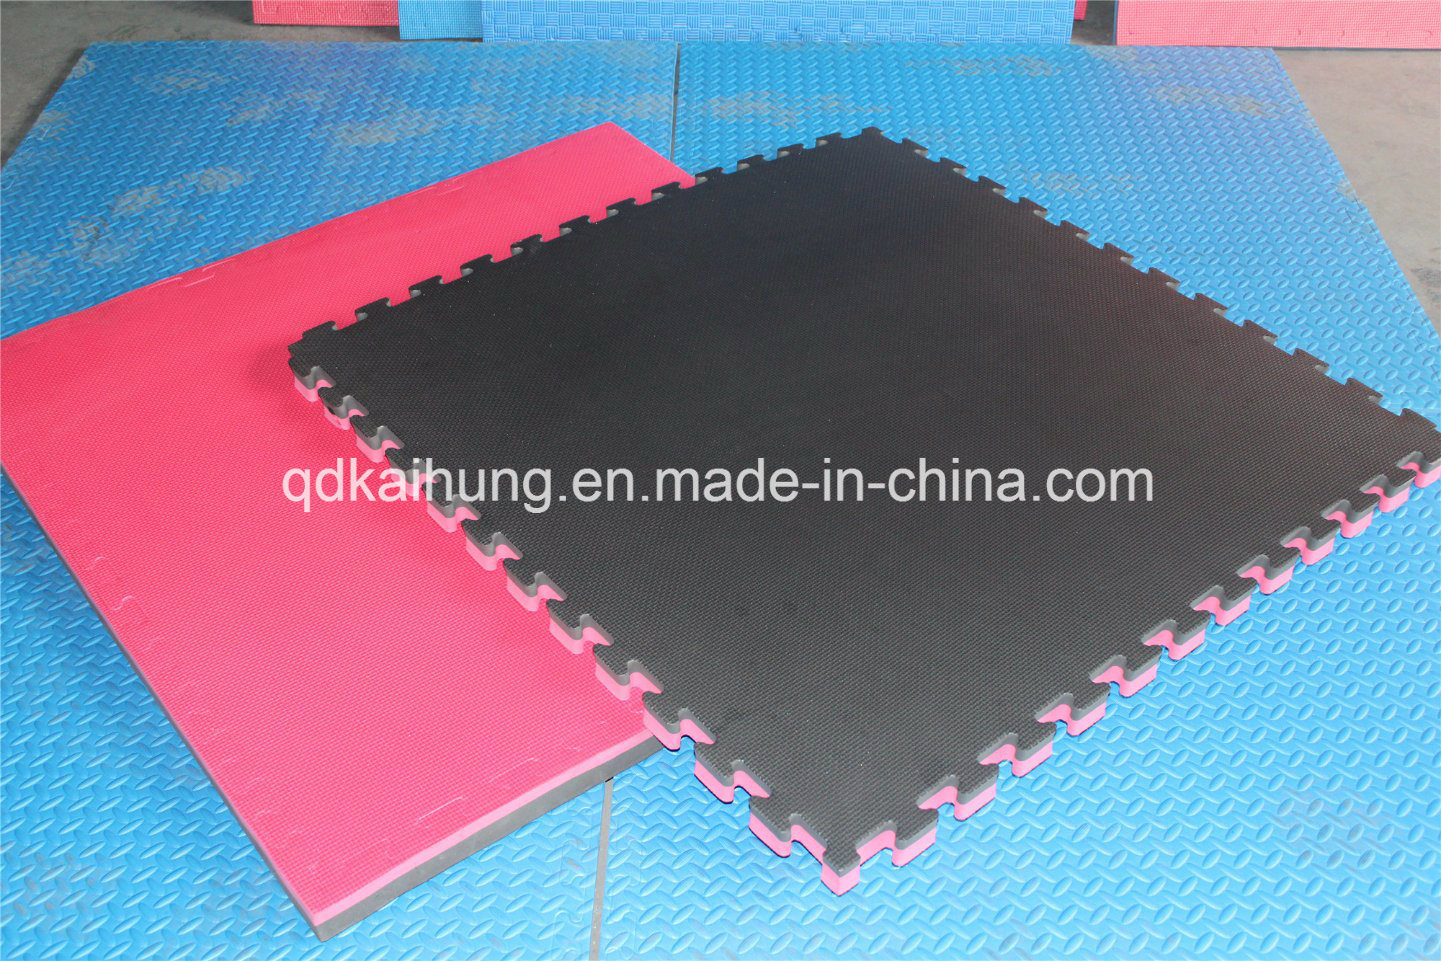 Interlock Kendo Mat China Puzzle Jigsaw Mats Puzzle Jigsaw Mats Manufacturers Suppliers Price Made In China